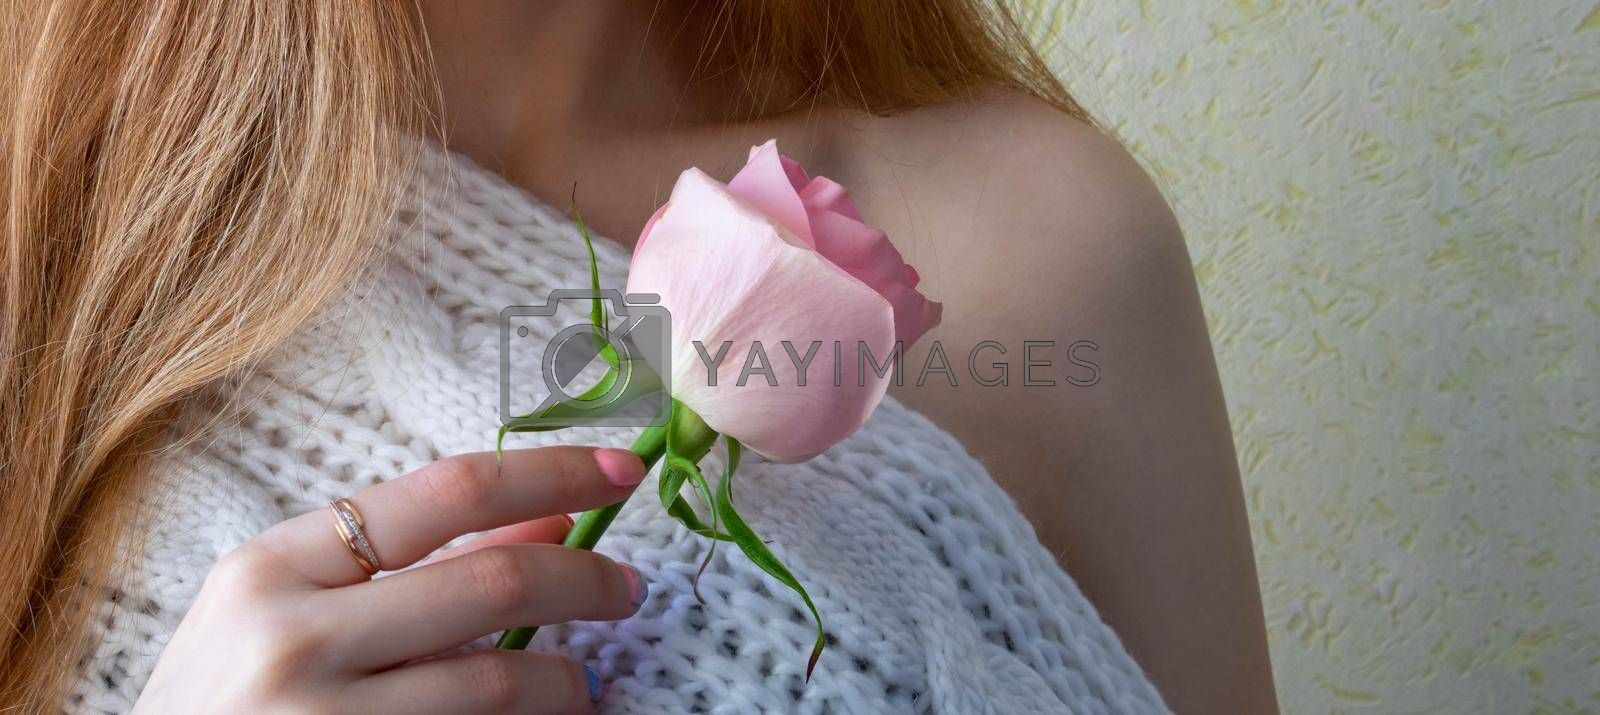 Hands of a young girl holding a pink rose. Space for your text by lapushka62